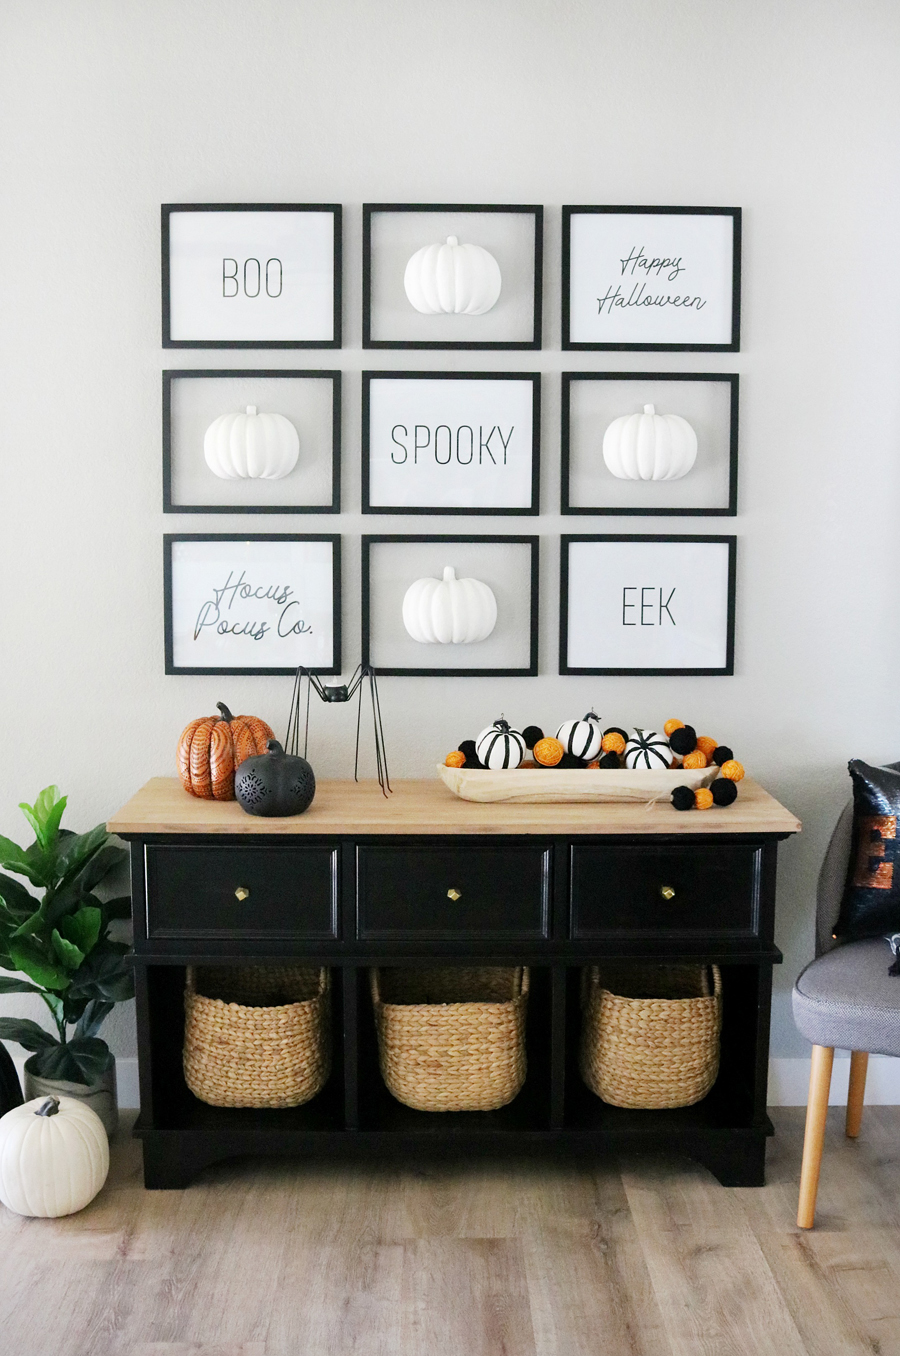 cool black and white decor ideas for halloween - Cool Black And White Decor Ideas for Halloween